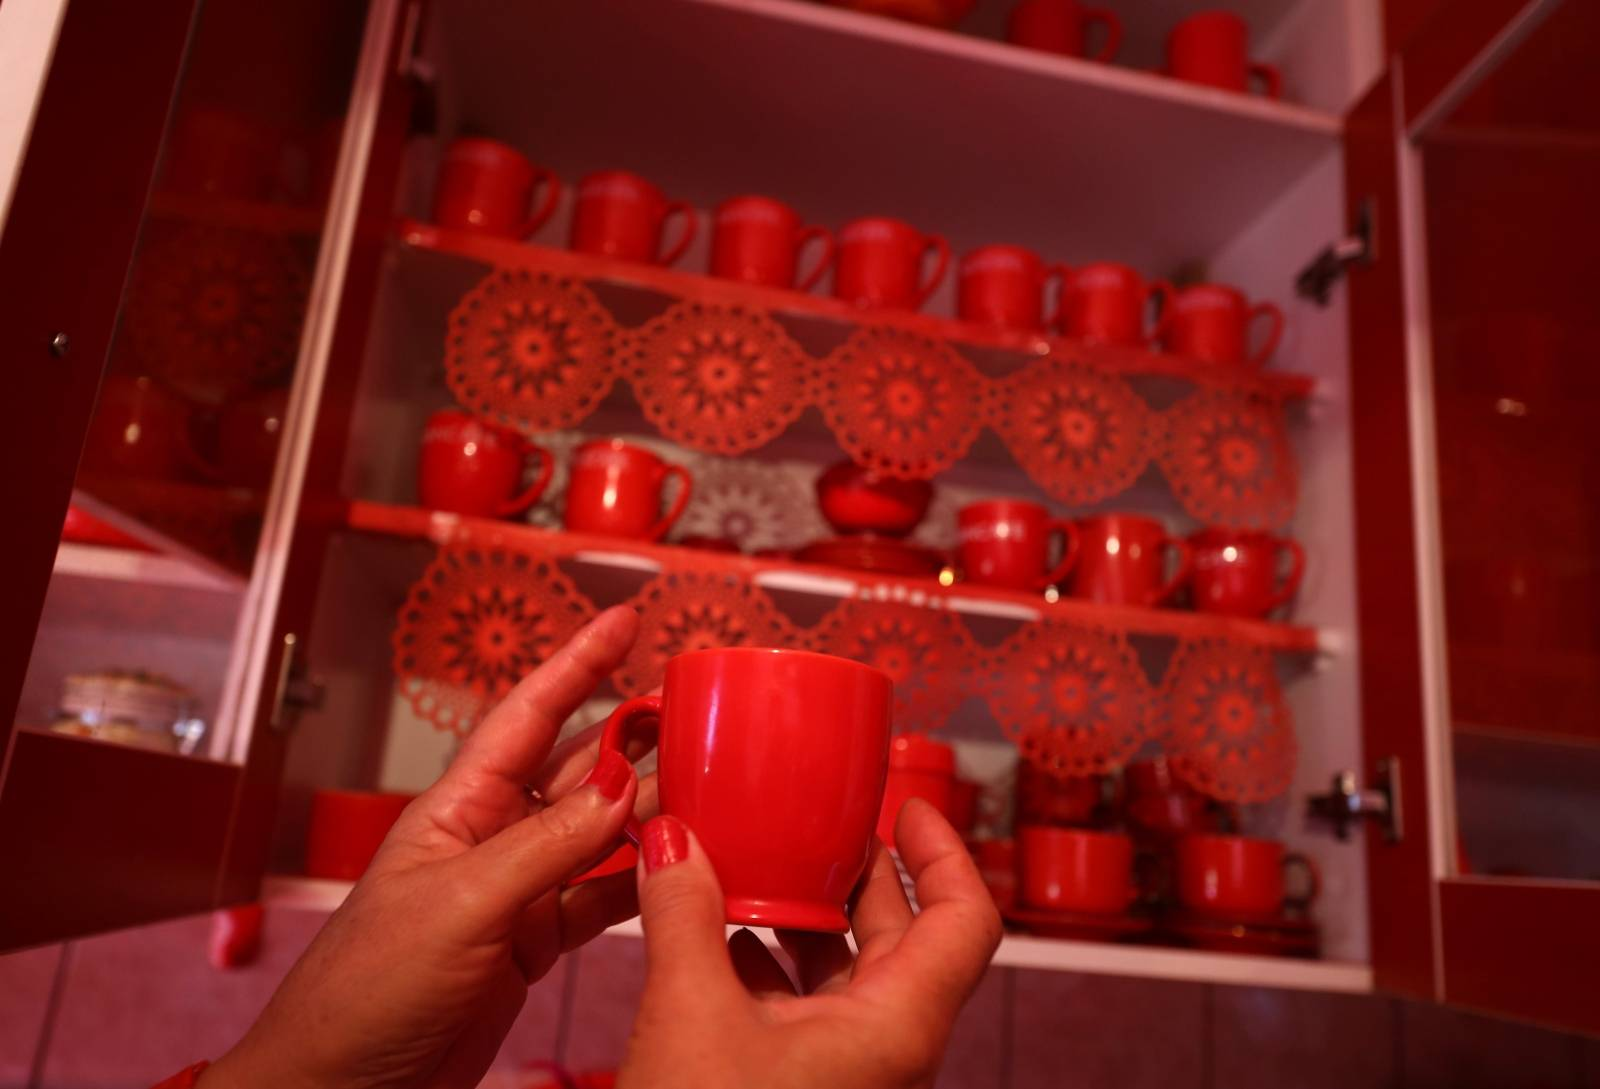 Zorica Rebernik, obsessed with the red color, holds a coffee cup in the kitchen inside her house in the village of Breze near Tuzla